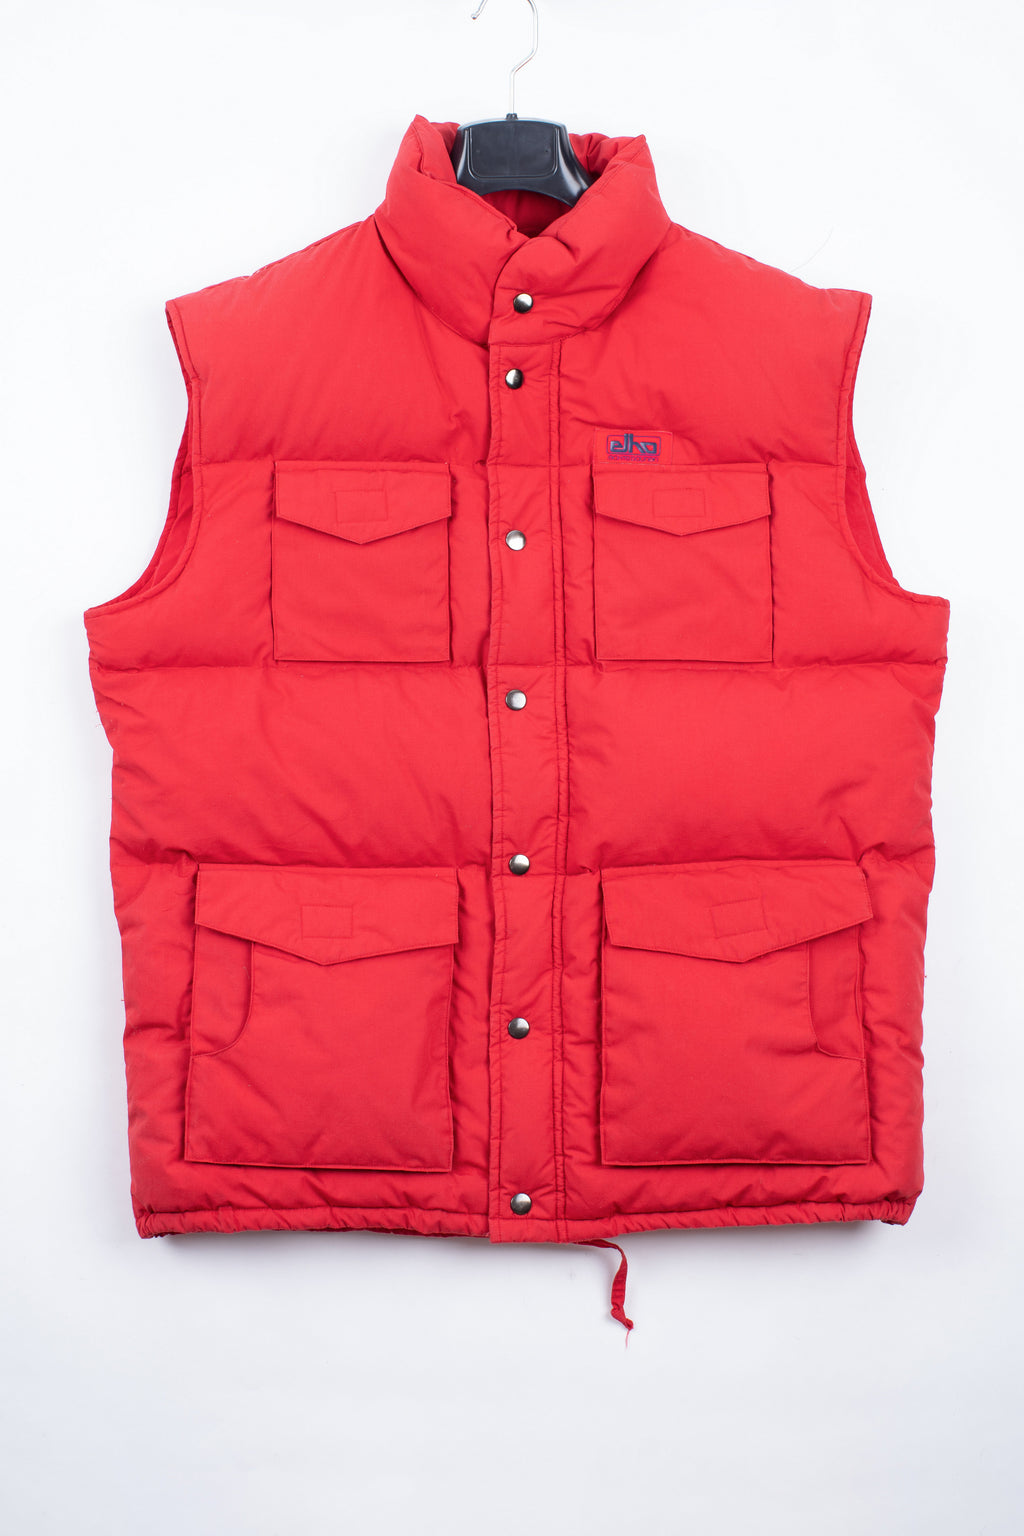 Vintage Elho Skiwear Down Puffer Red Men's Vest, SIZE XL